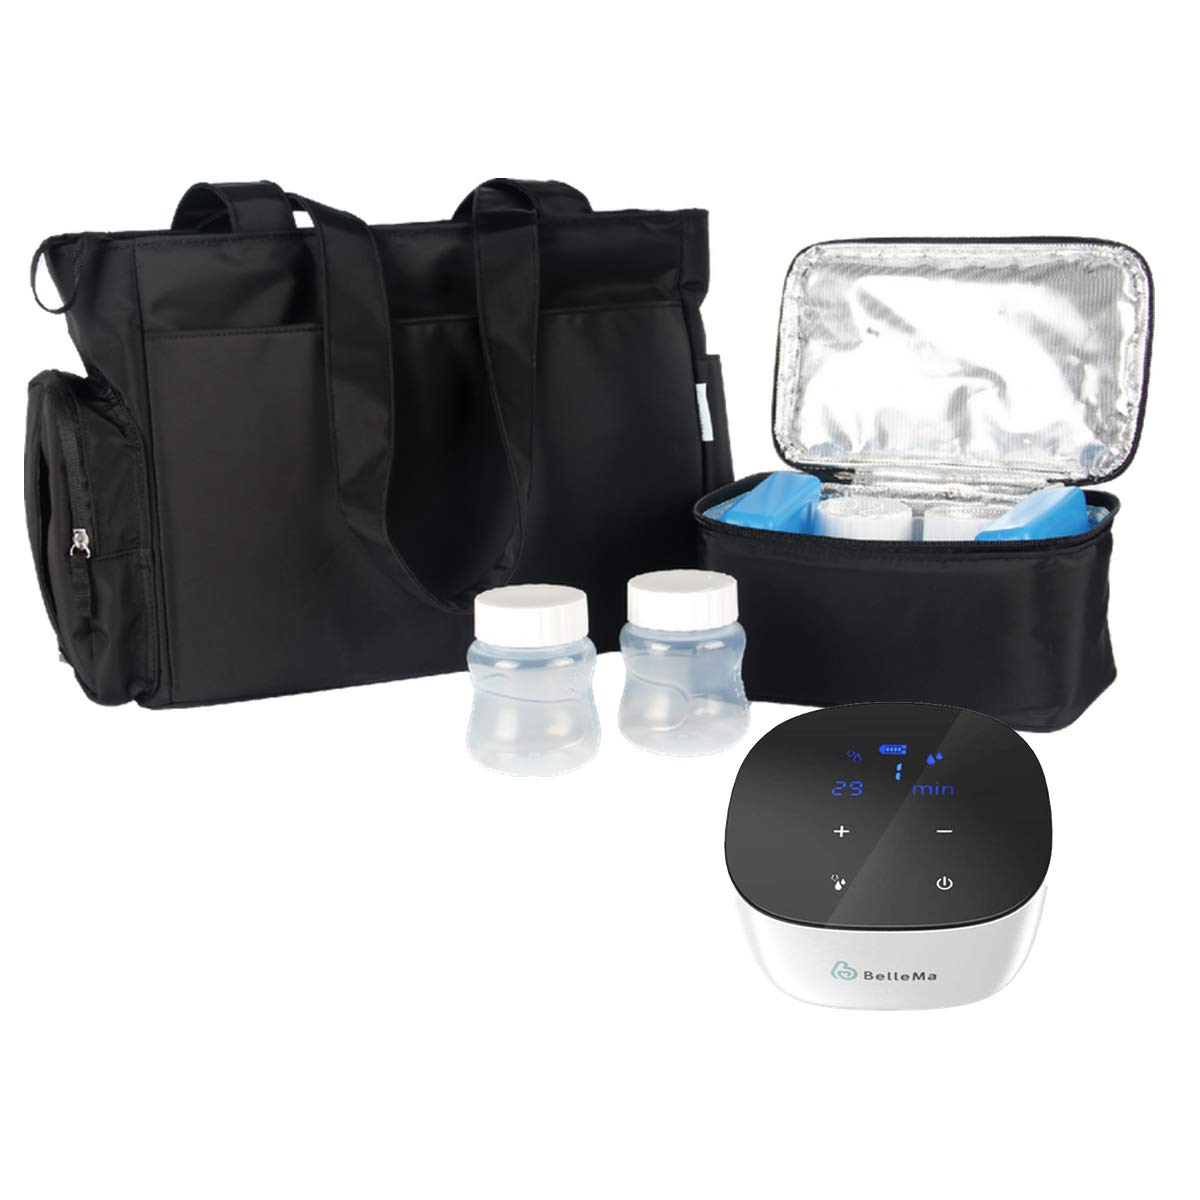 BelleMa E5 Double Electric Breast Pump with Tote and Cooler Pack, Hospital Grade, Patented 3D Collection Closed System, 2-Phase Mode, 9 Suction Levels, Li-Battery, Portable for Travel/Office/Home